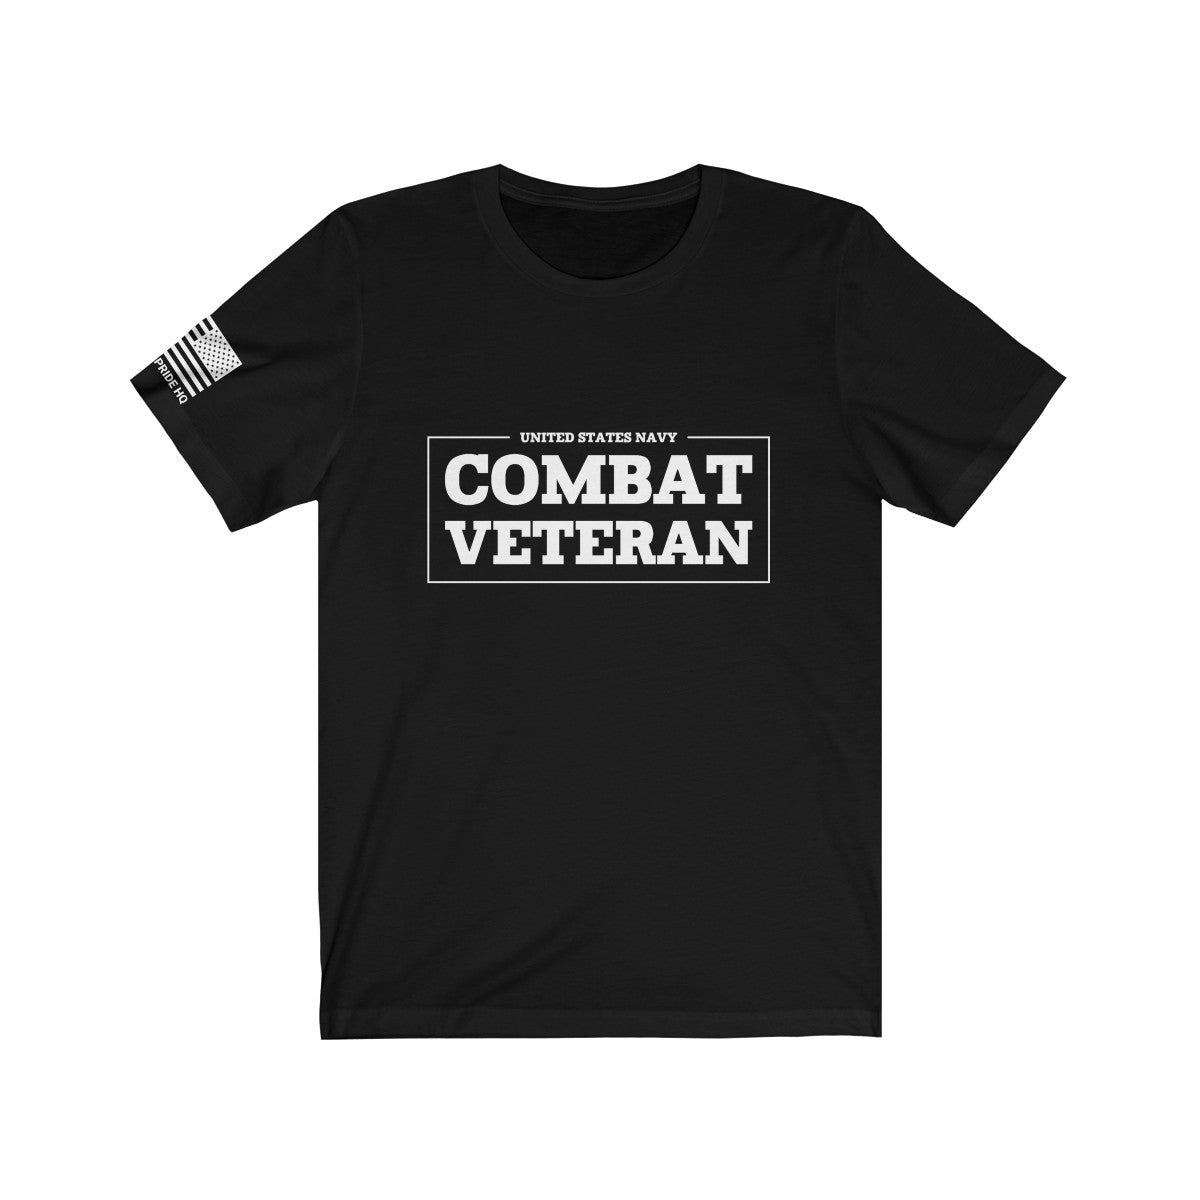 United States Navy Combat Veteran Men's T-Shirt